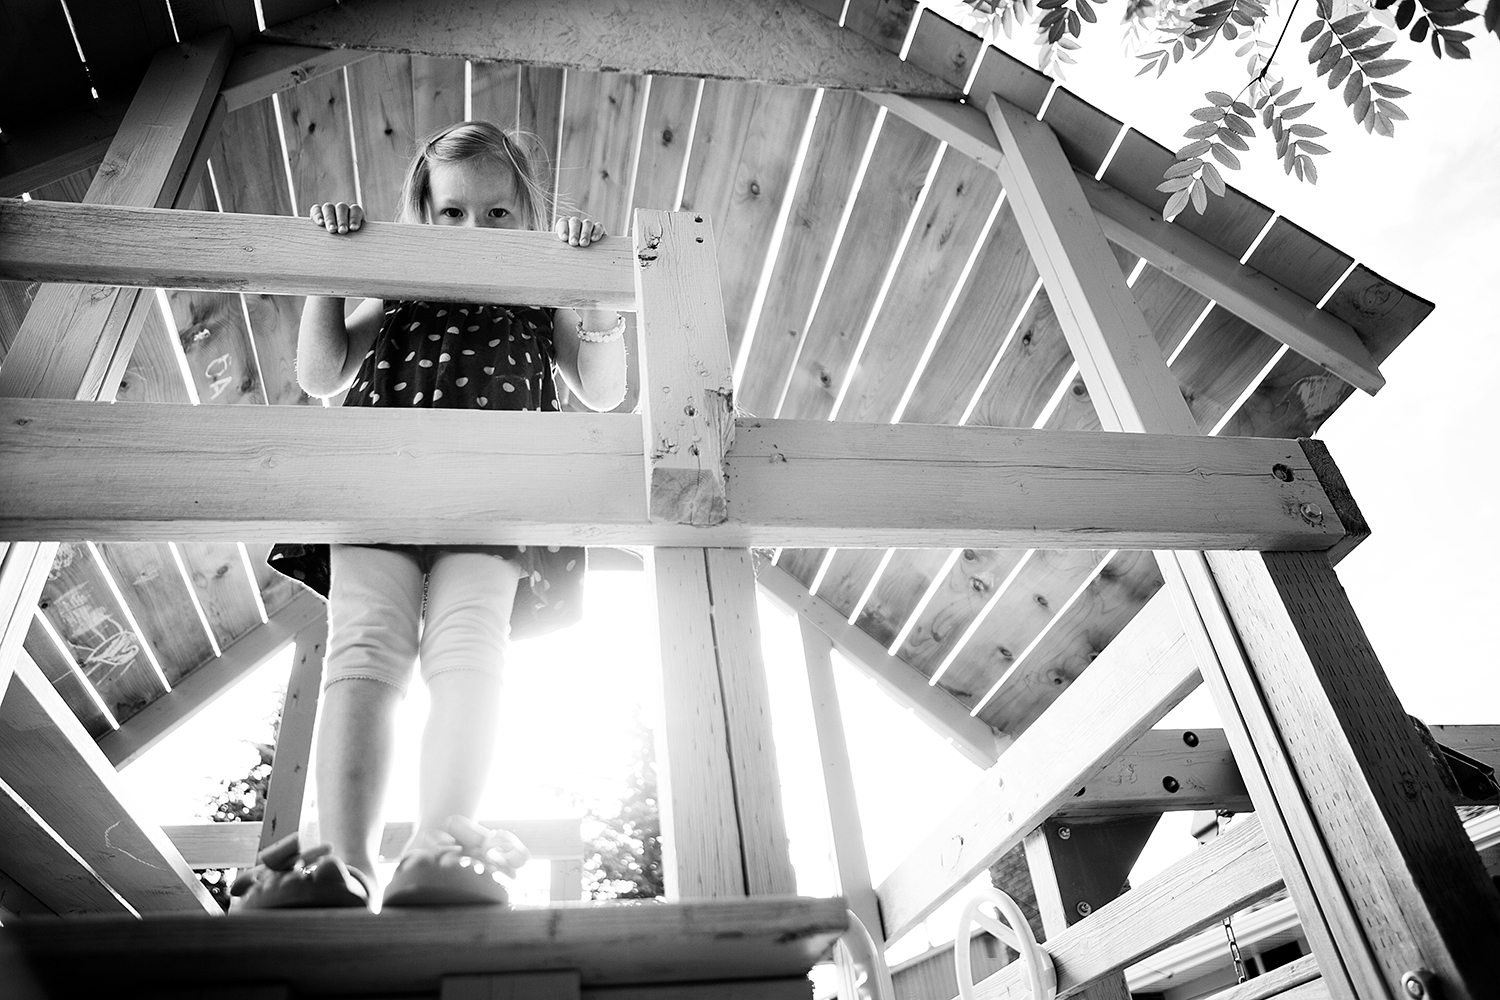 Editorial photograph of a child in a playhouse